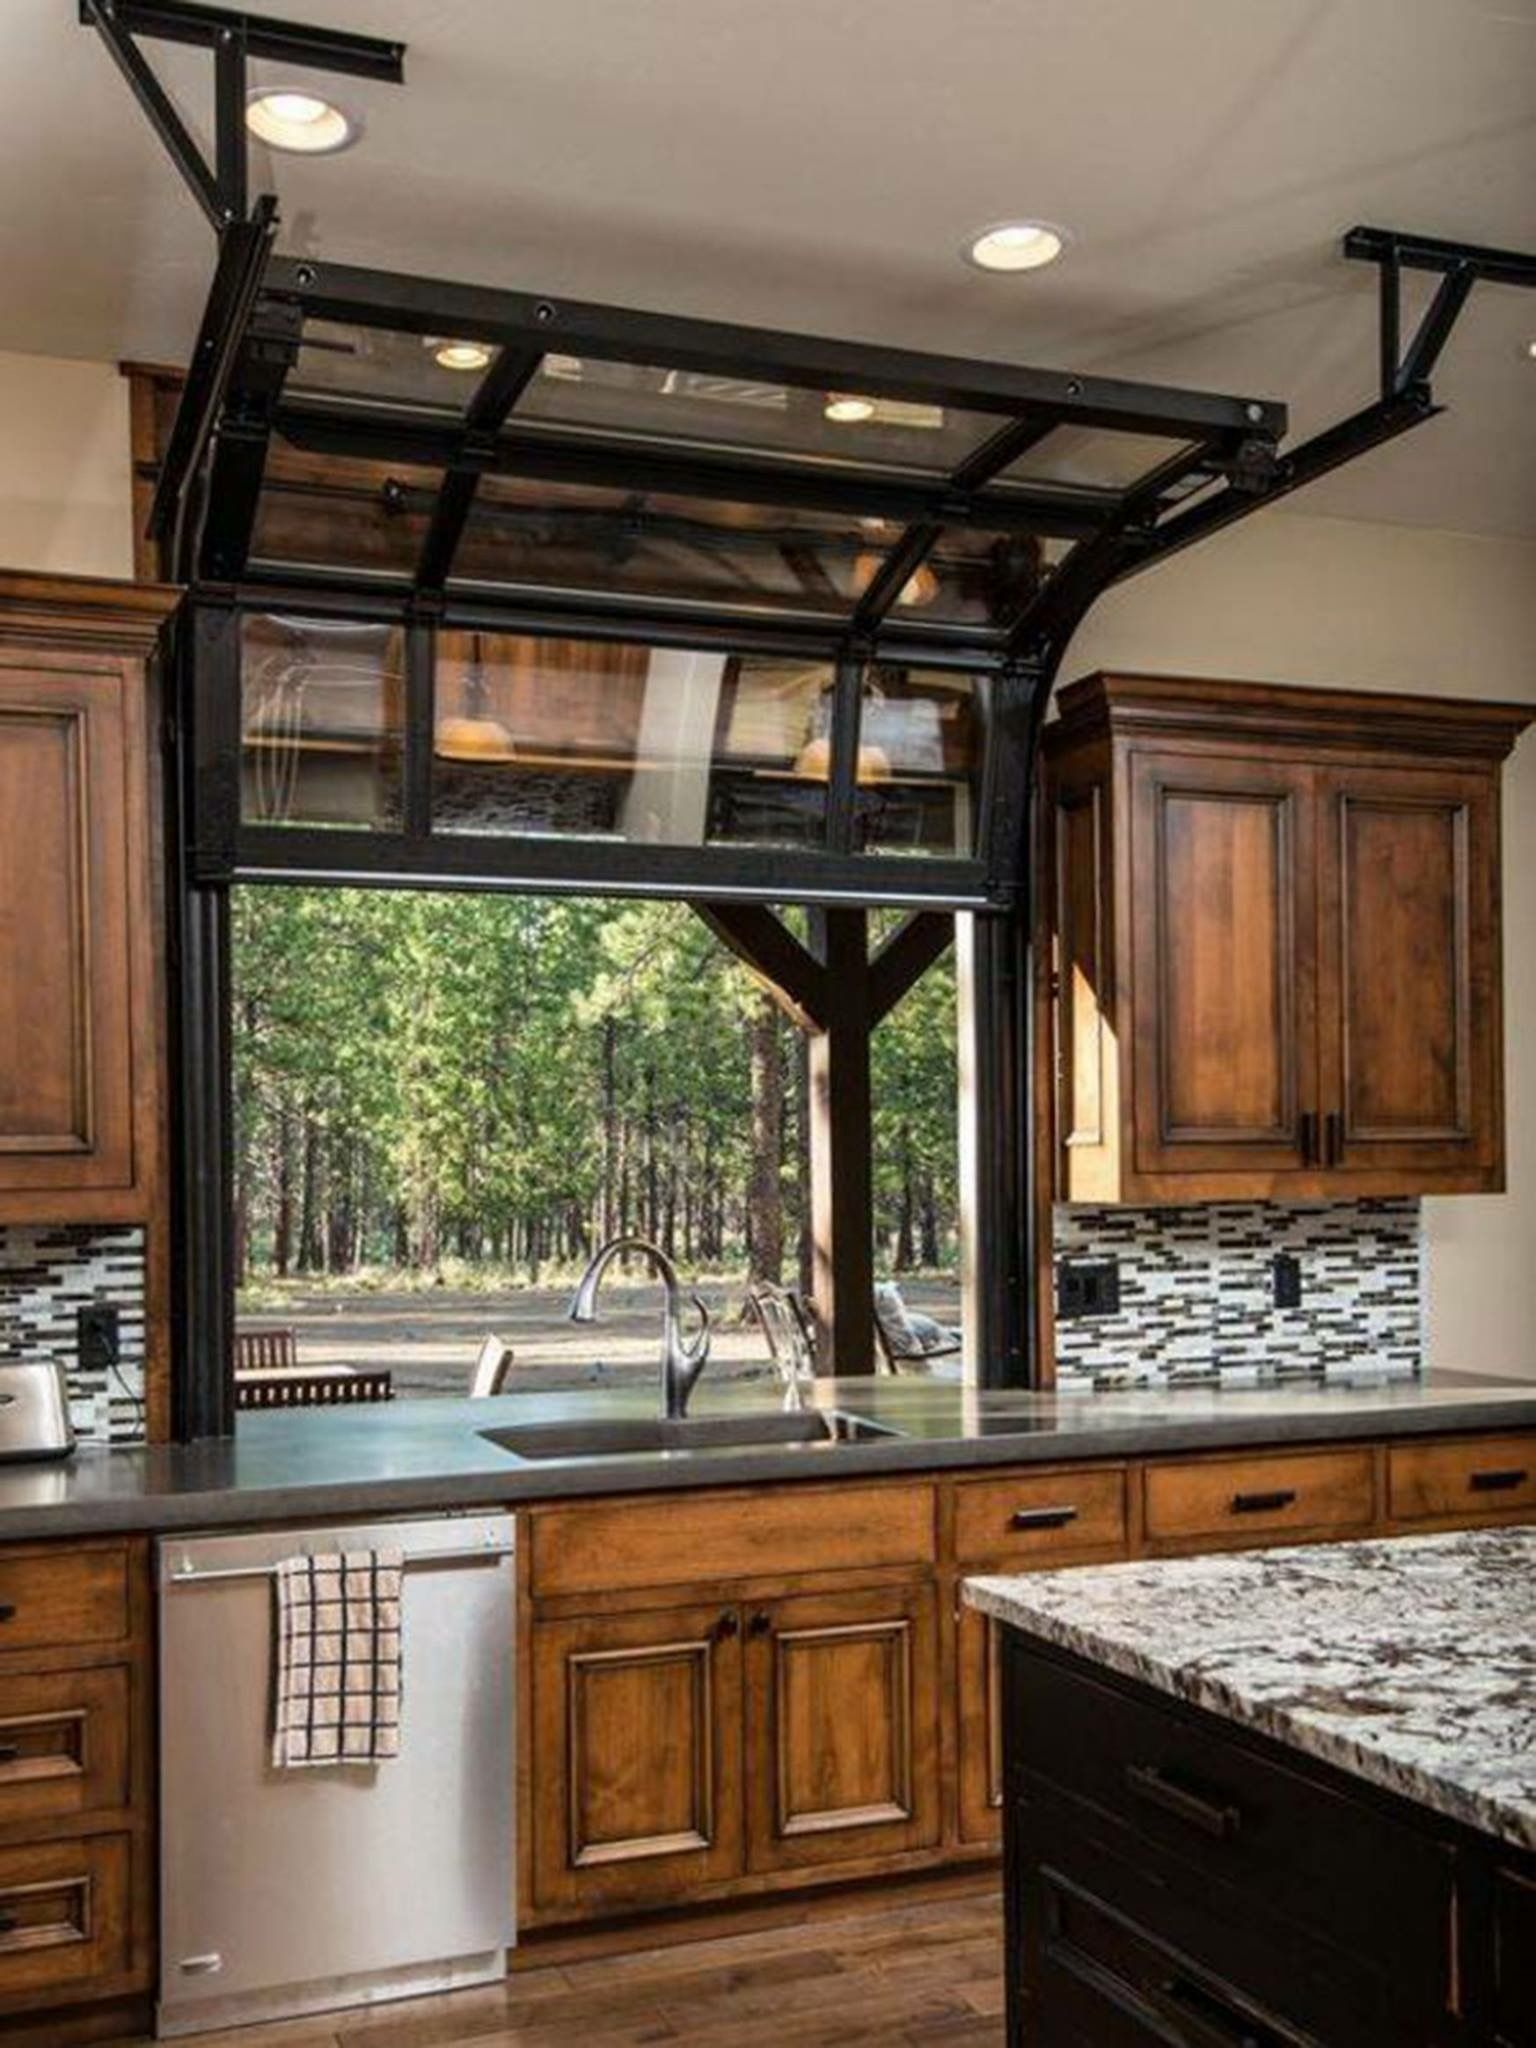 Image result for garage style roll up kitchen window